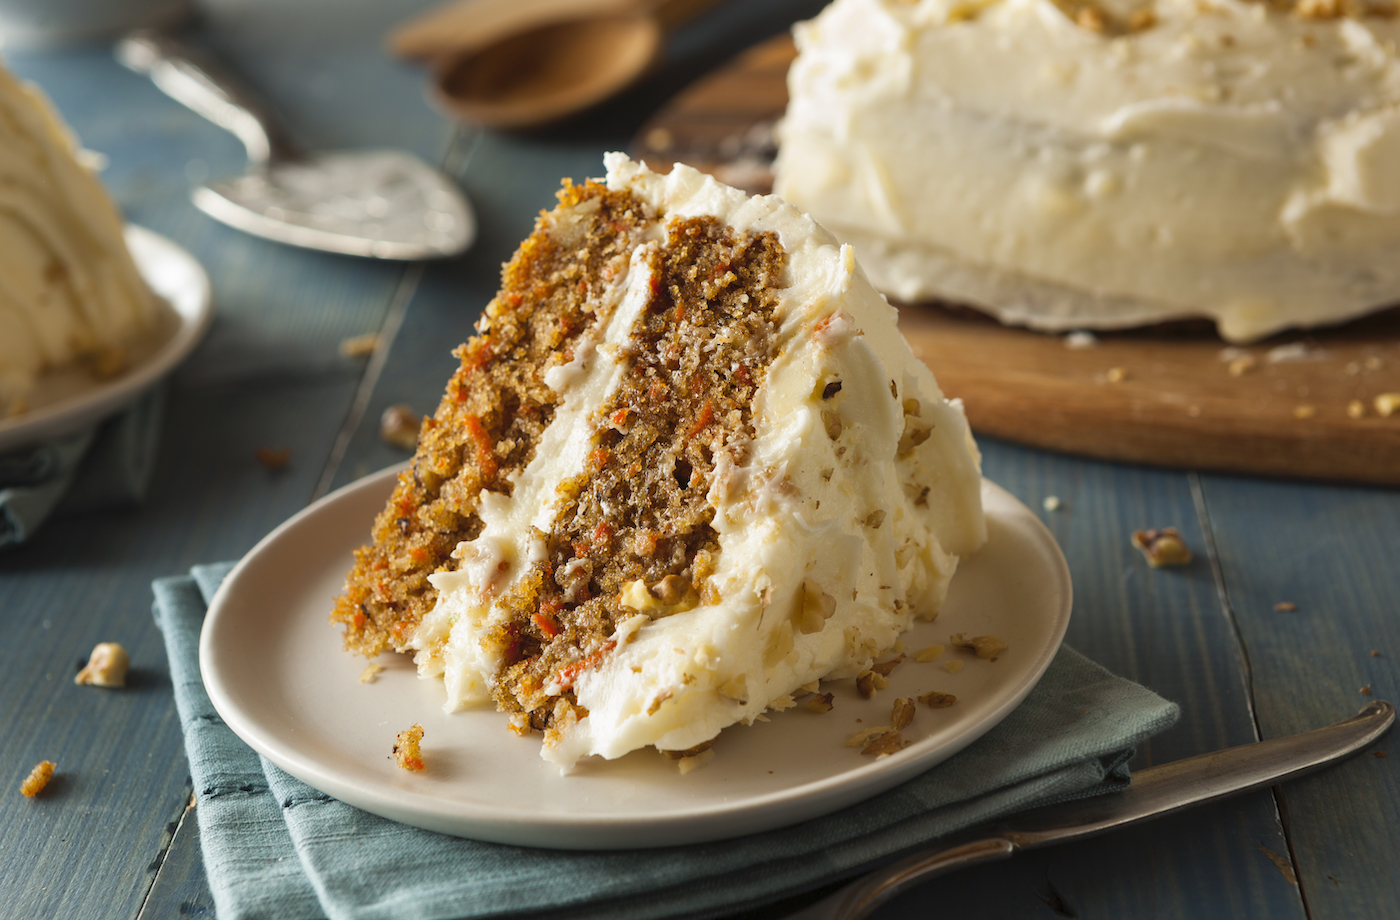 Thumbnail for Looking for a new quarantine baking project? Try this delicious, gluten-free carrot cake